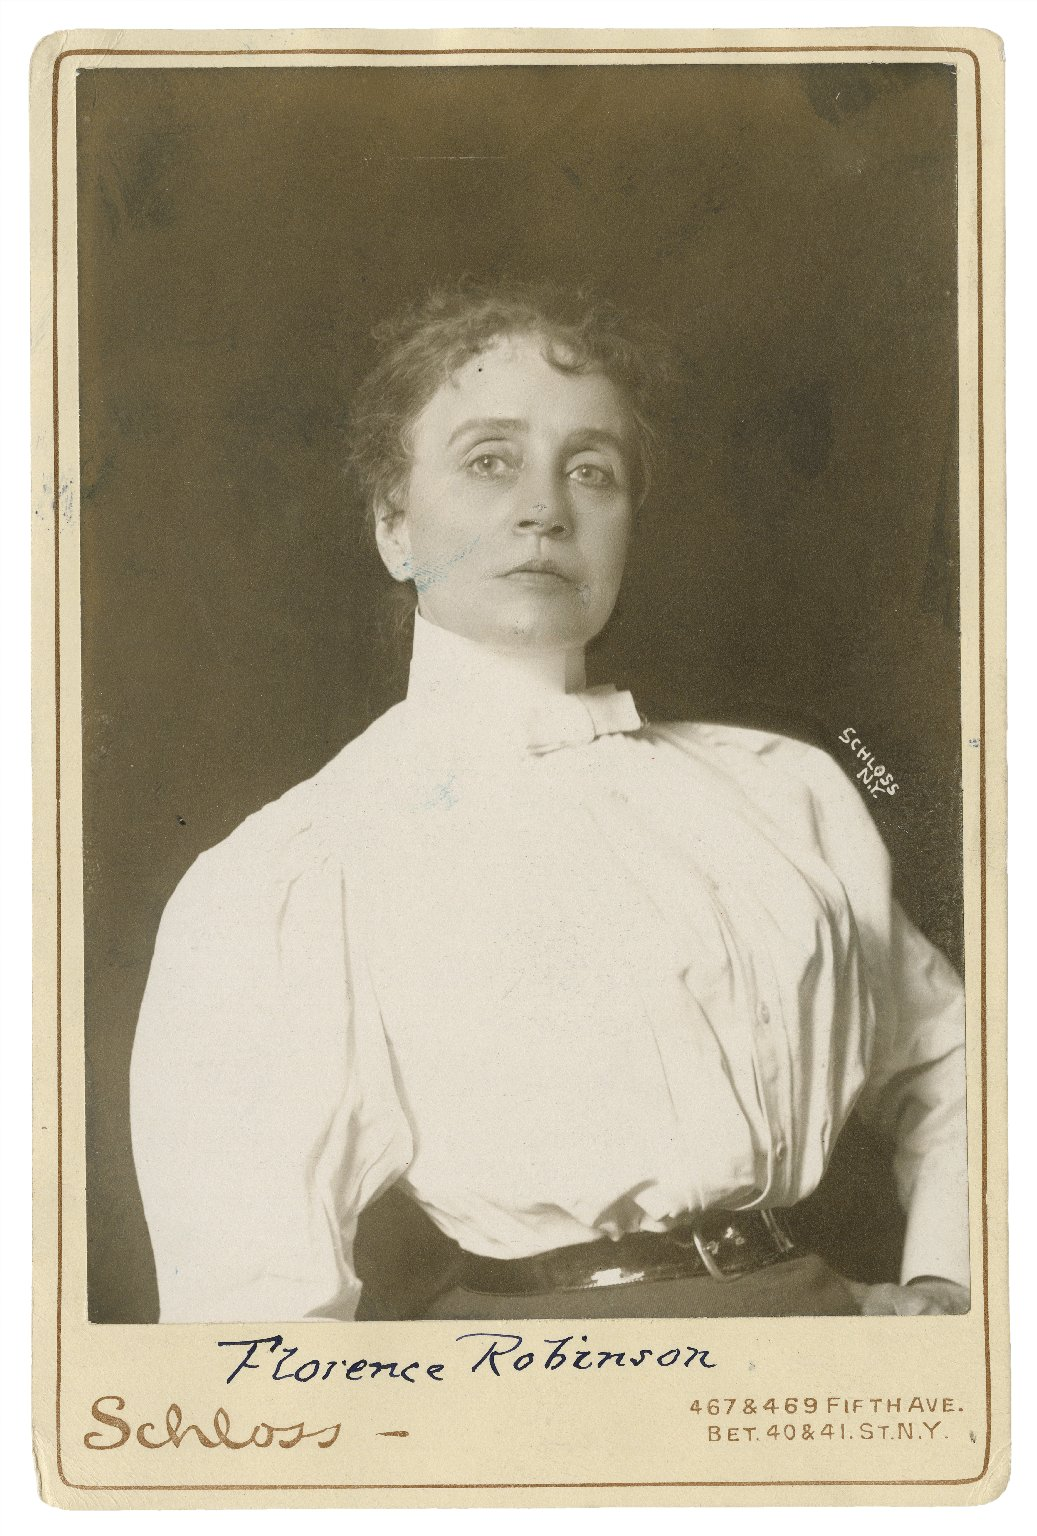 Florence Robinson [graphic] / Schloss, N.Y.